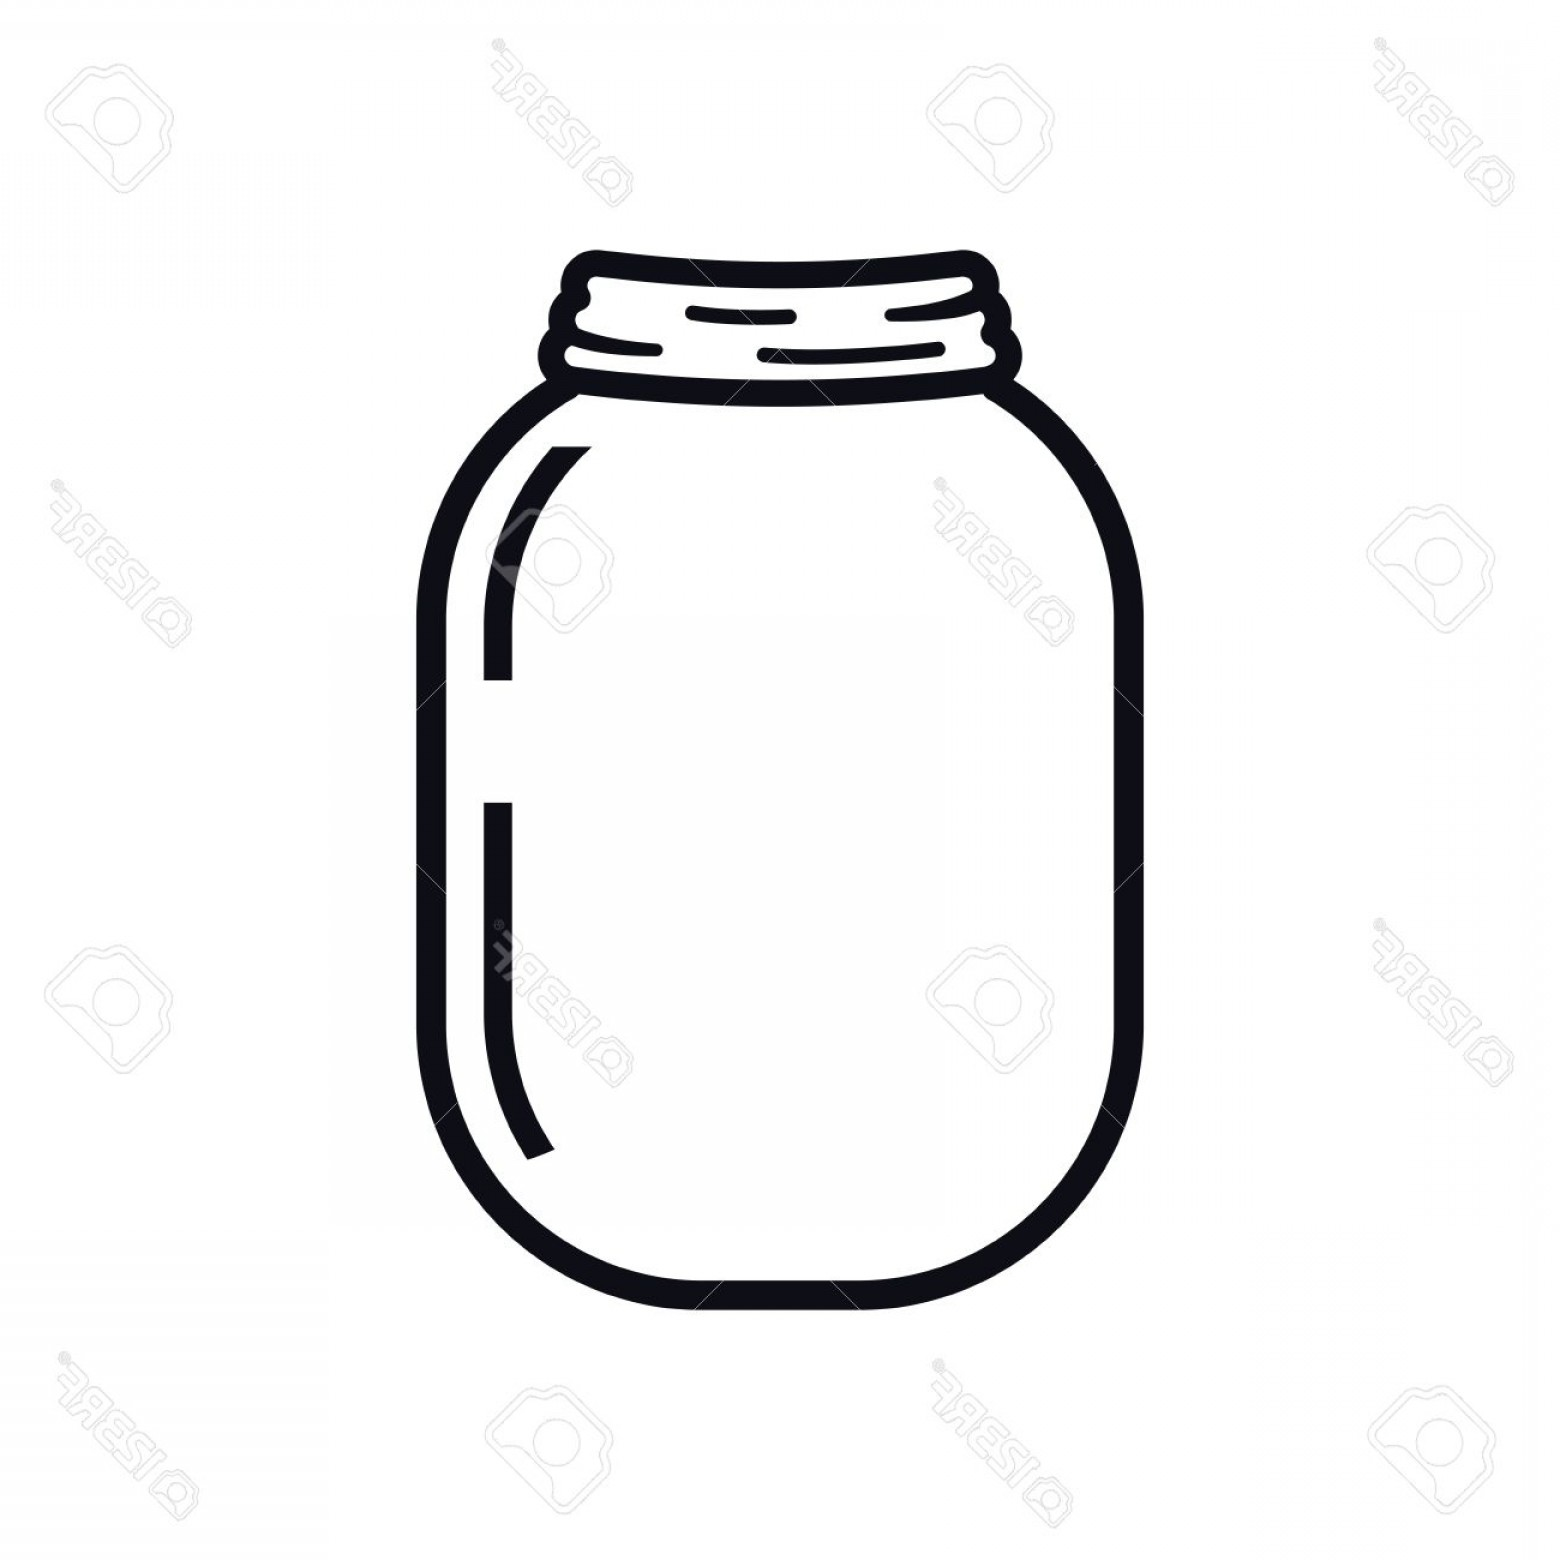 Mason Jar Outline Vector: Photostock Vector Mason Jar Glass Rustic Can Icon Isolated And Flat Illustration Vector Graphic